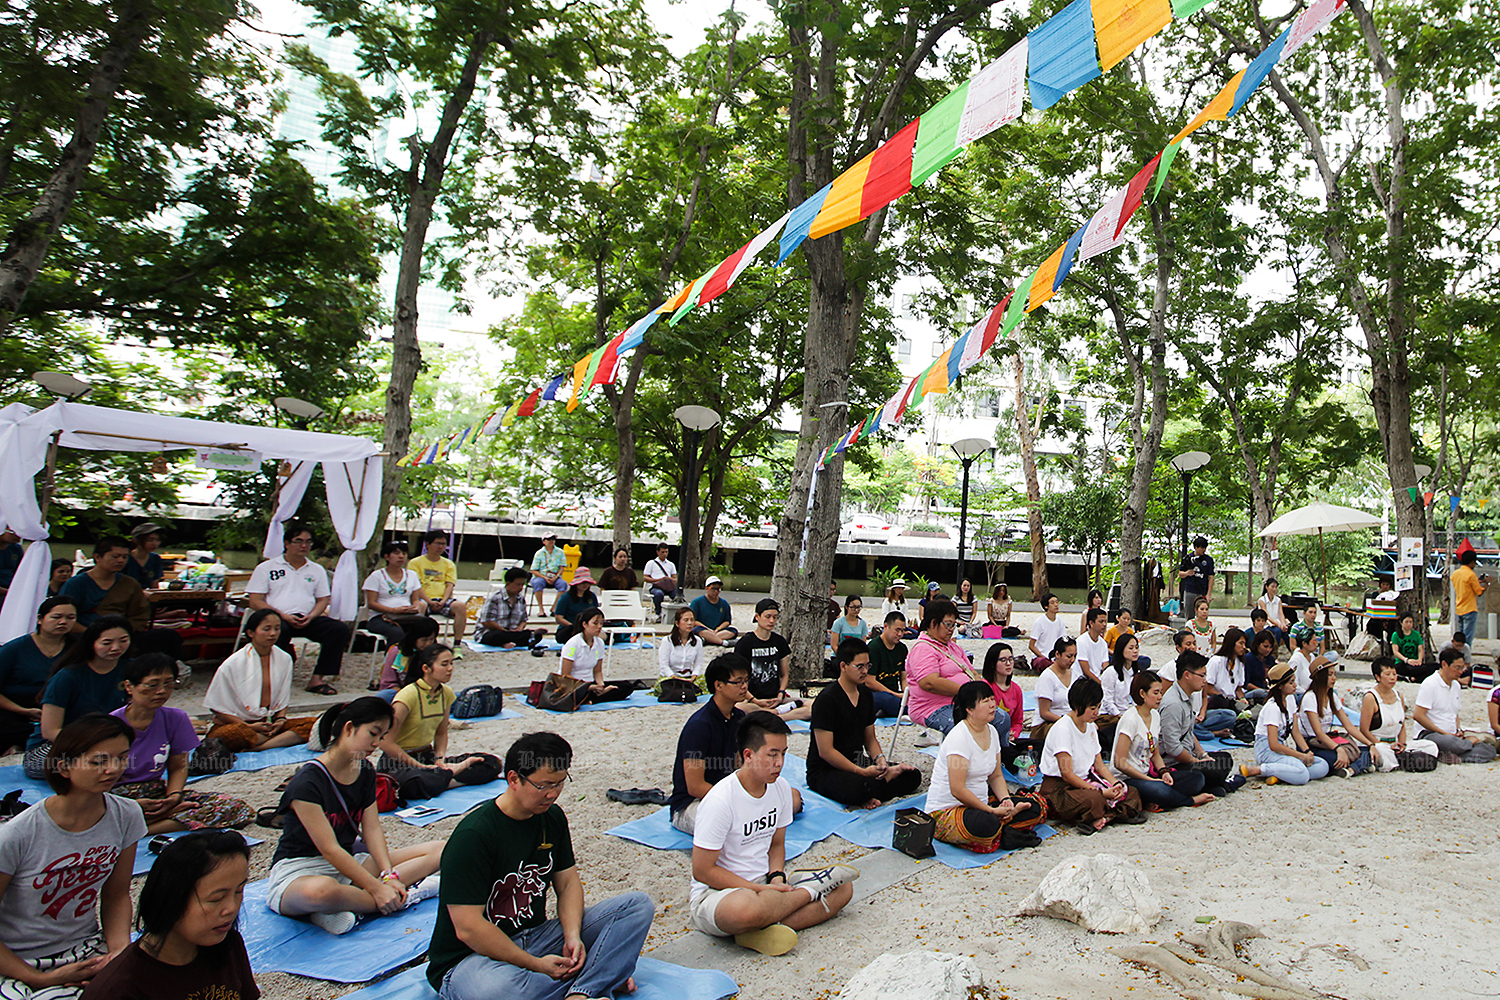 Buddhists have been invited to meditate countrywide to mark the 150th birthday of Luang Pu Mun. (Bangkok Post file photo)